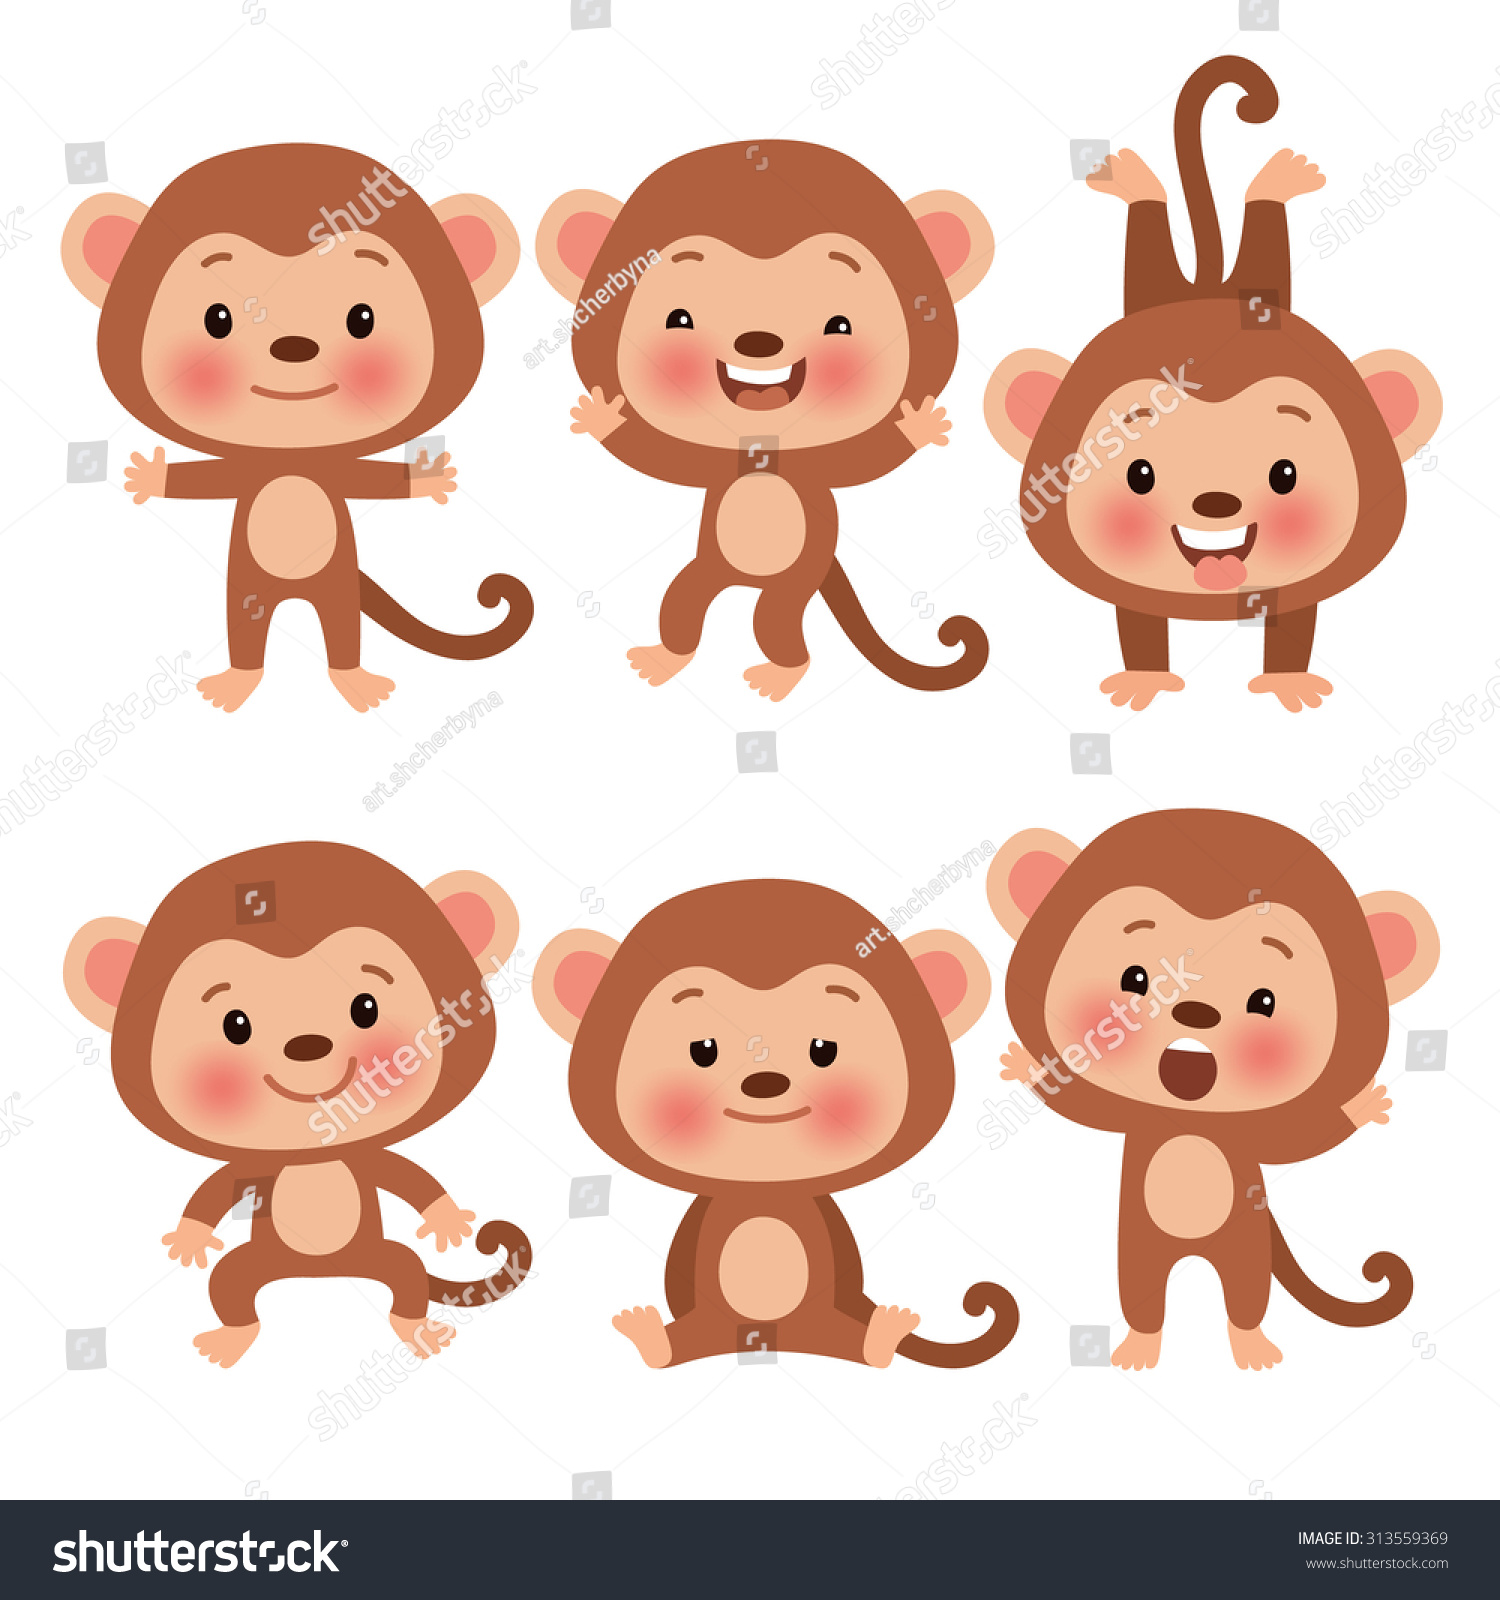 royalty free set of cute funny monkeys in a cartoon 313559369